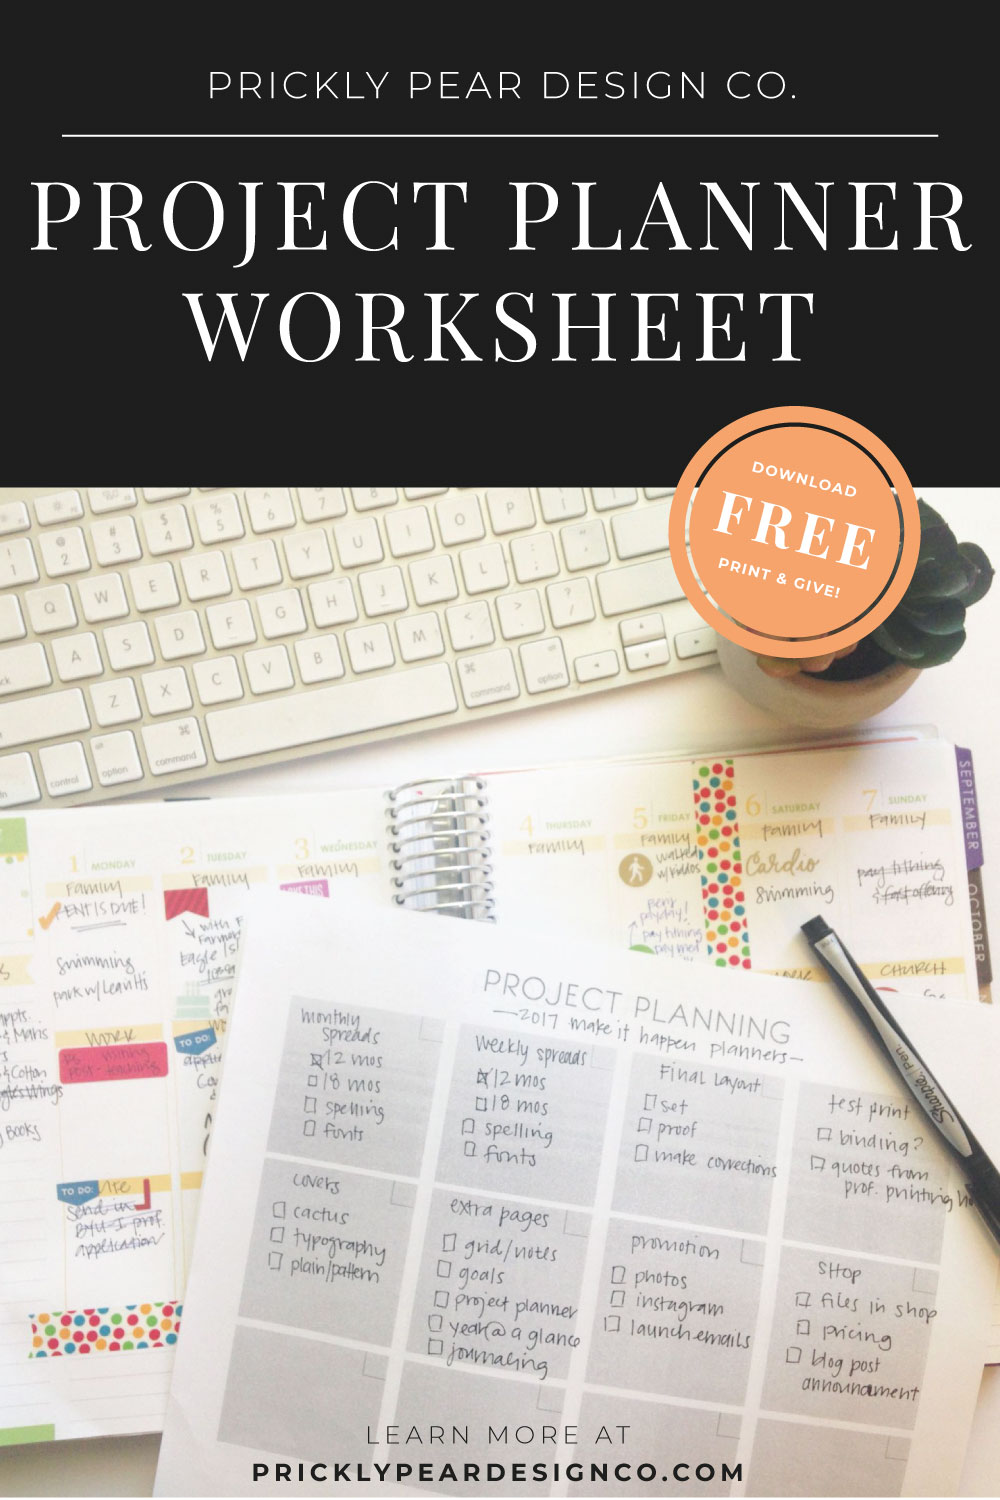 Project Planner Worksheet from Prickly Pear Design Co.